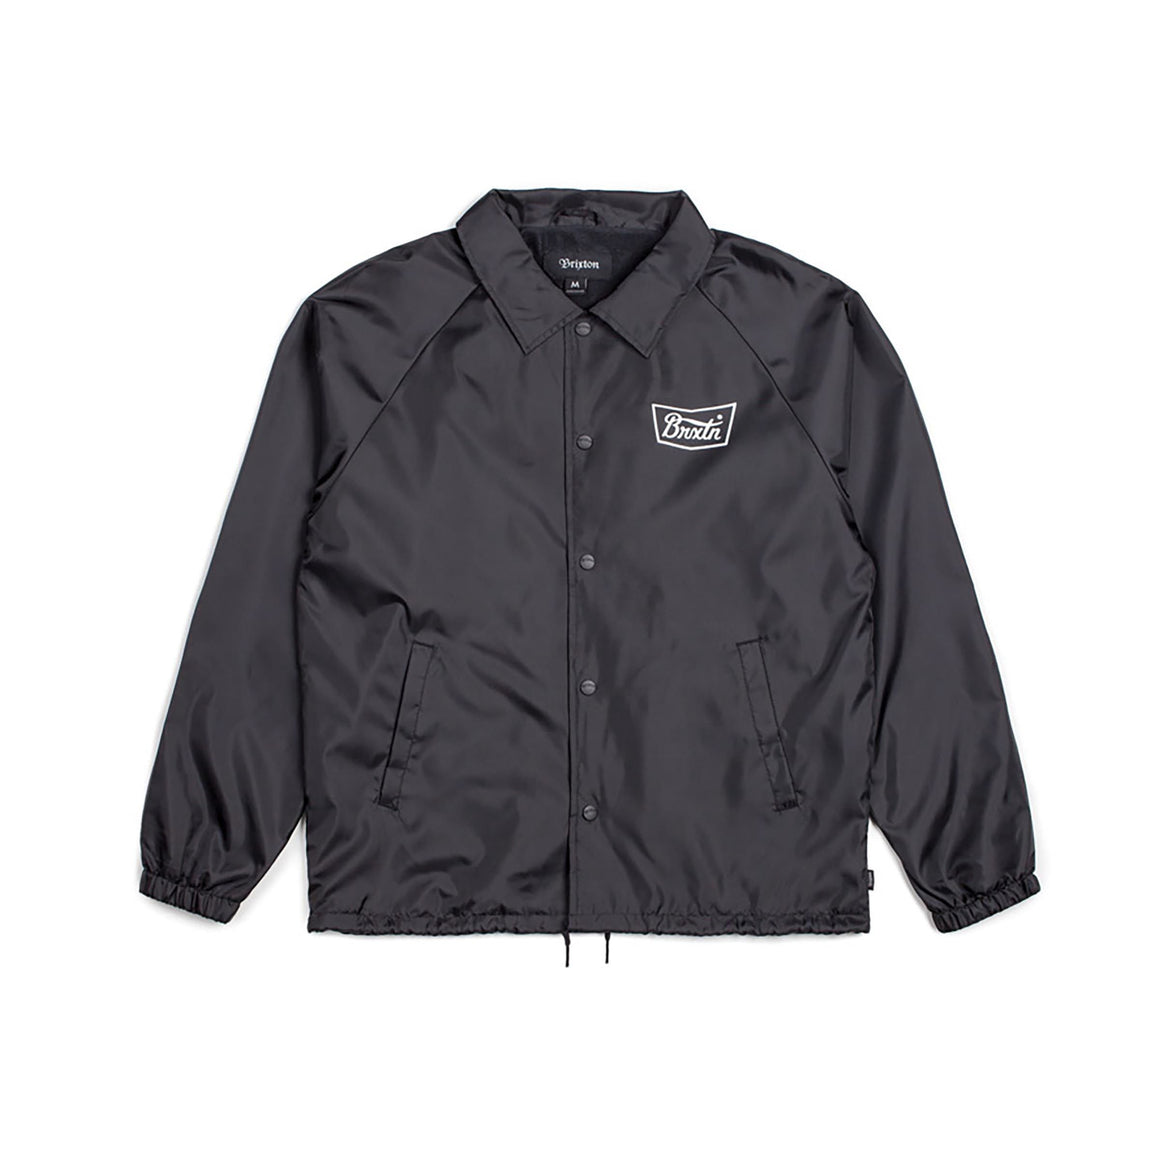 Stith Jacket - Black/White